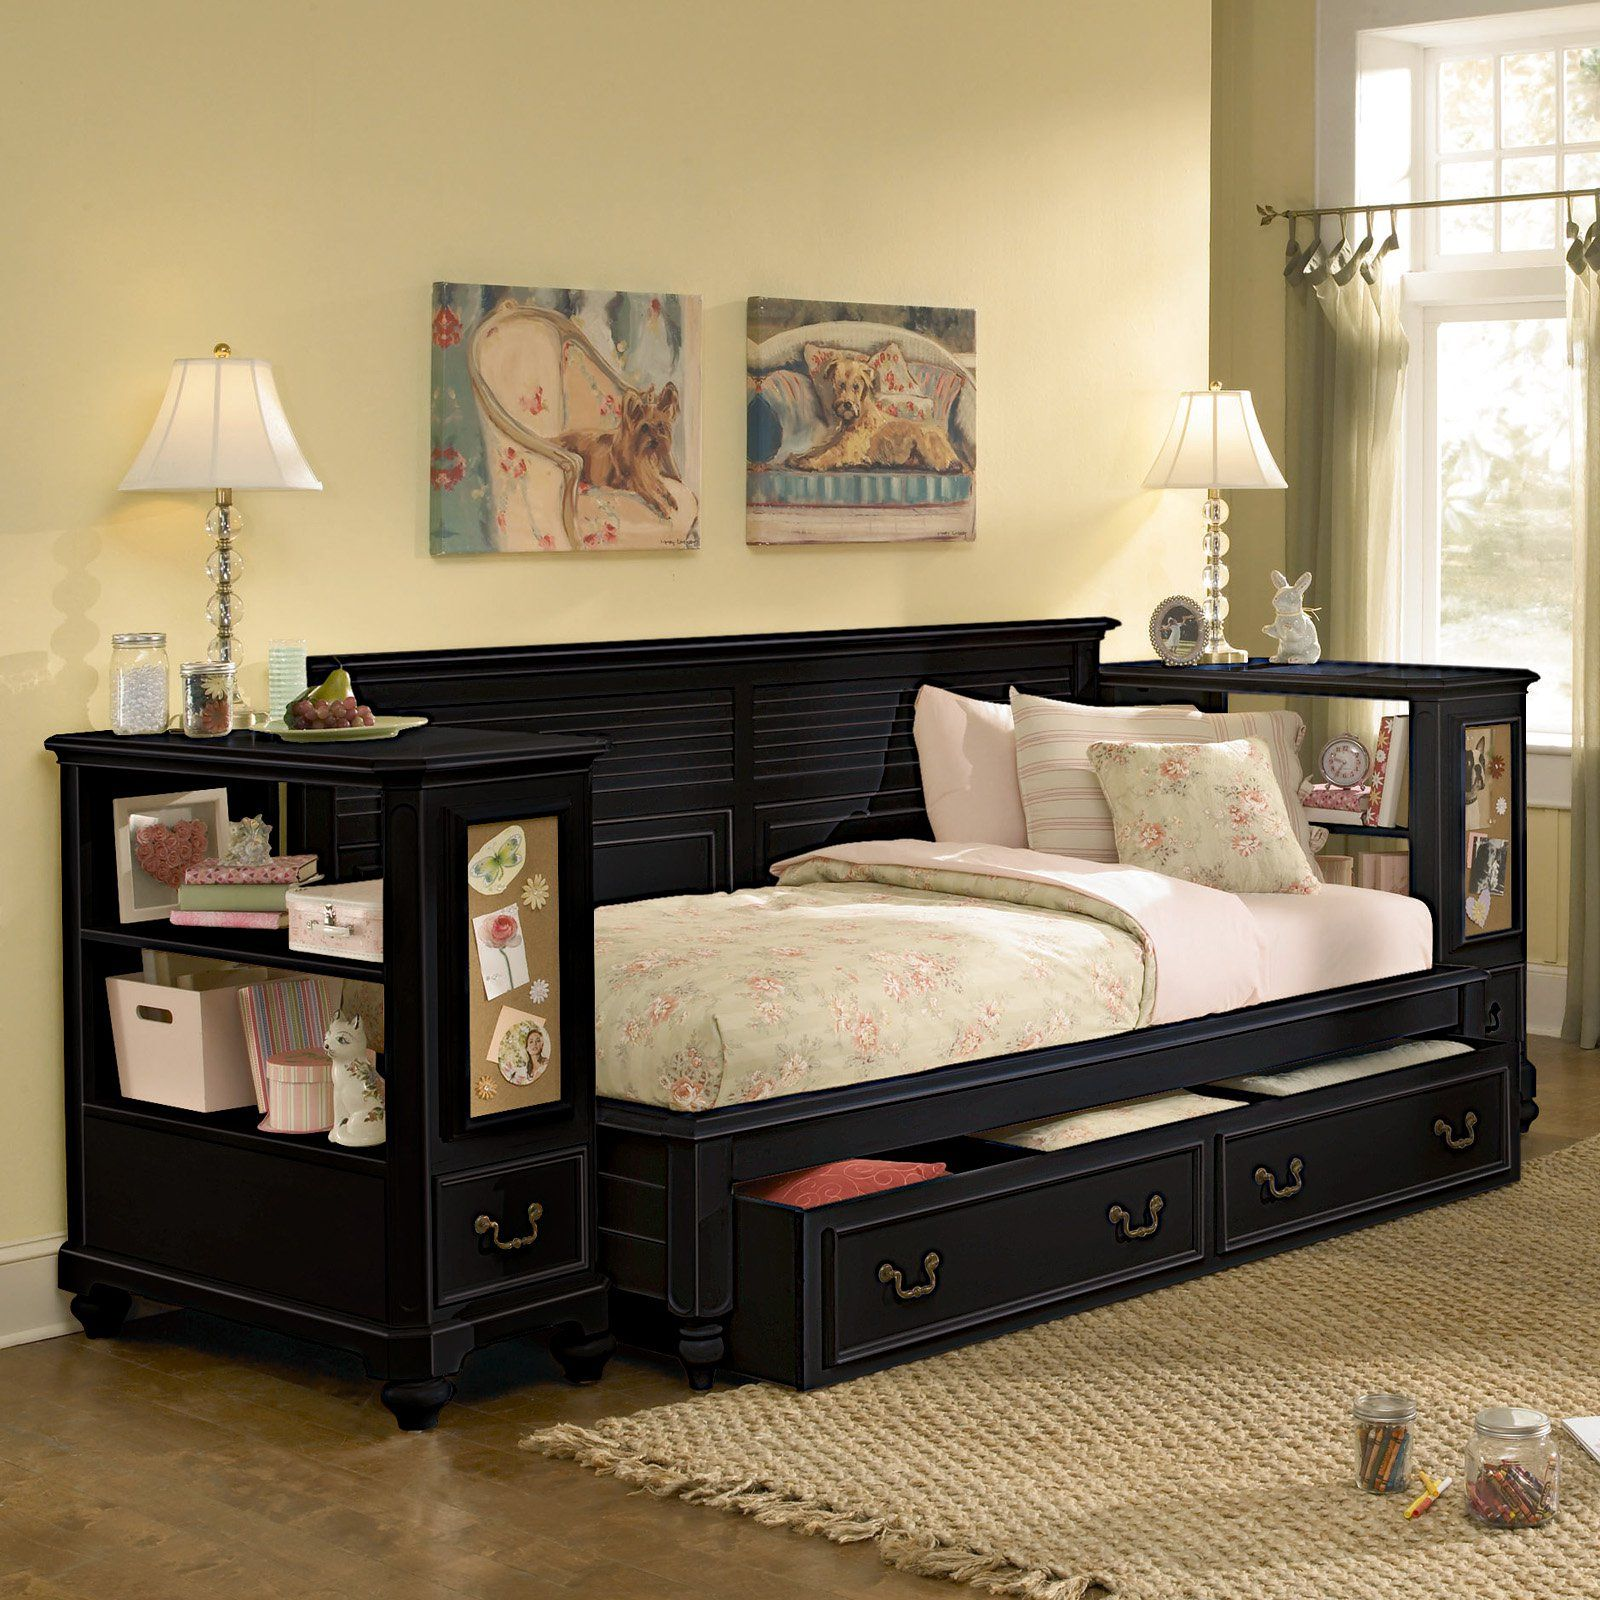 Image of: Top Full Size Day Bed